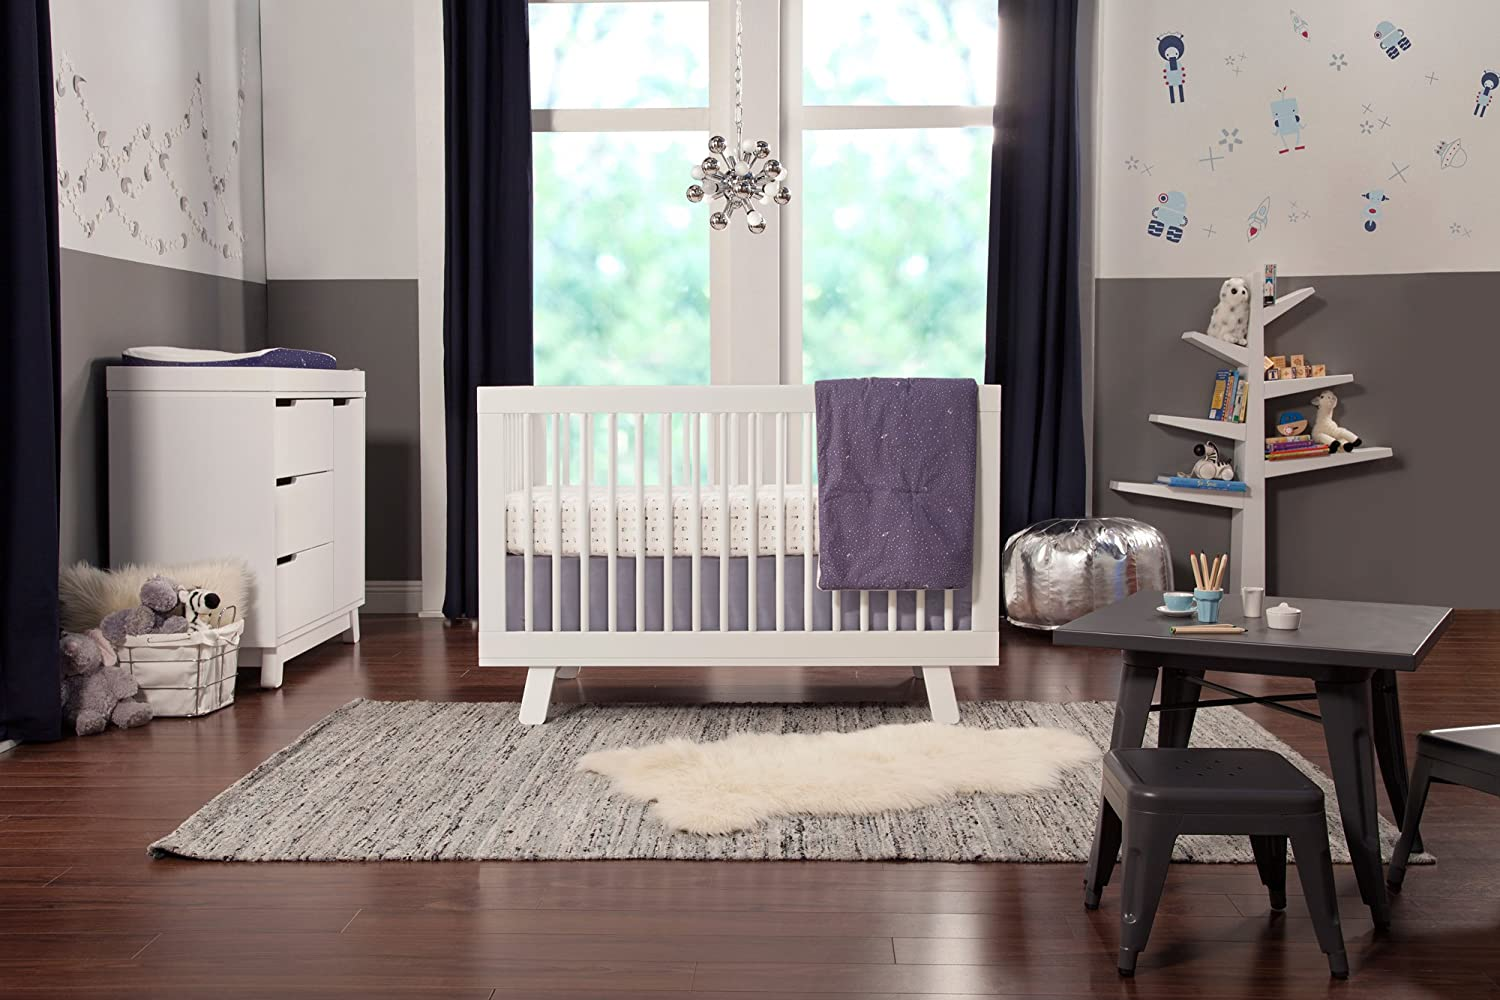 amazoncom  babyletto hudson in convertible crib with toddler  - amazoncom  babyletto hudson in convertible crib with toddler railwhite  baby